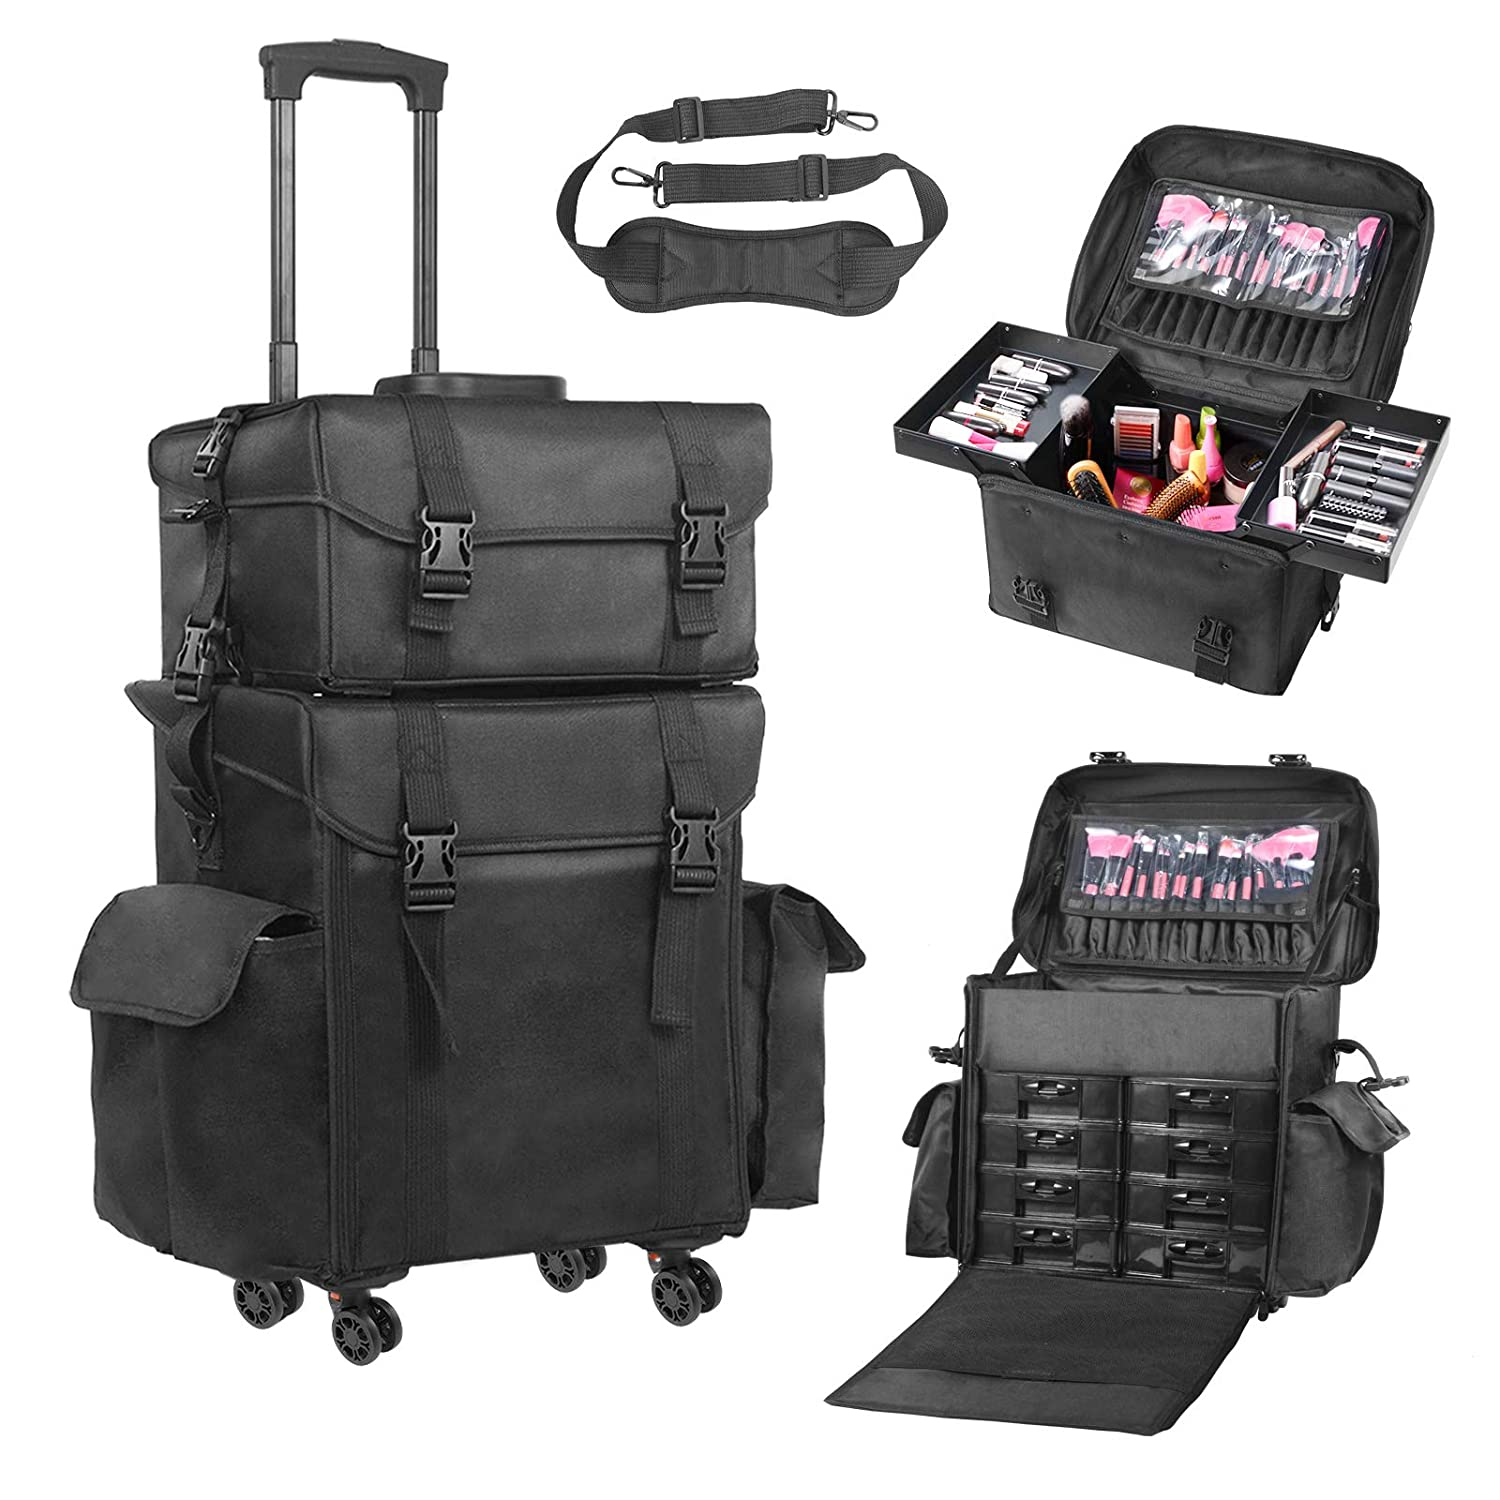 af419a490108 Amazon.com   Voilamart Rolling Makeup Case Trolley 2 in 1 Travel Cosmetic  Train Cases on Wheels - Nylon Black Bags for Professional Make Up Artist  Cosmetics ...